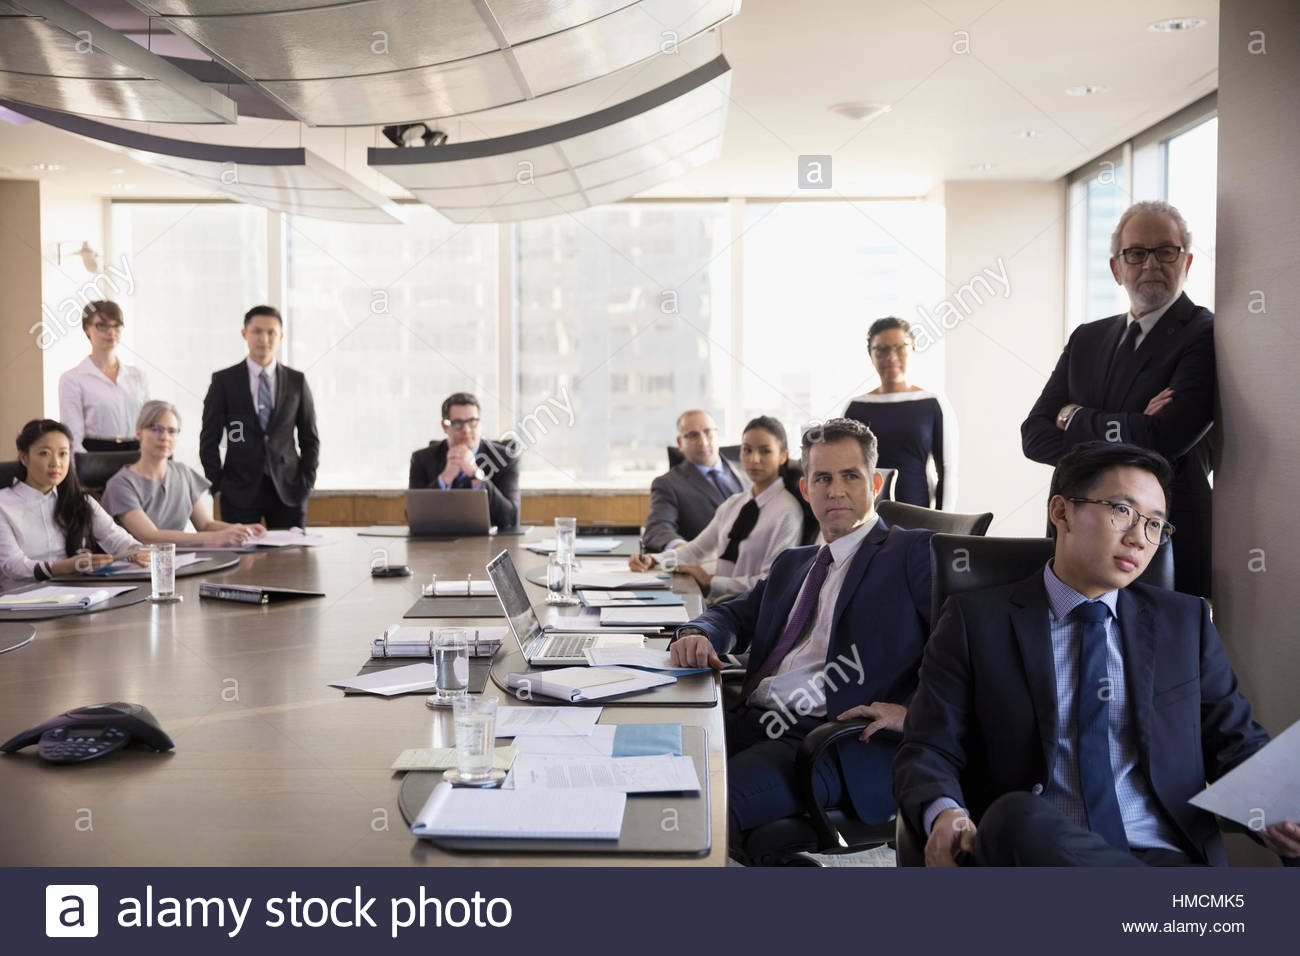 Groovy Attentive Lawyers Listening In Conference Room Meeting Stock Home Interior And Landscaping Ponolsignezvosmurscom